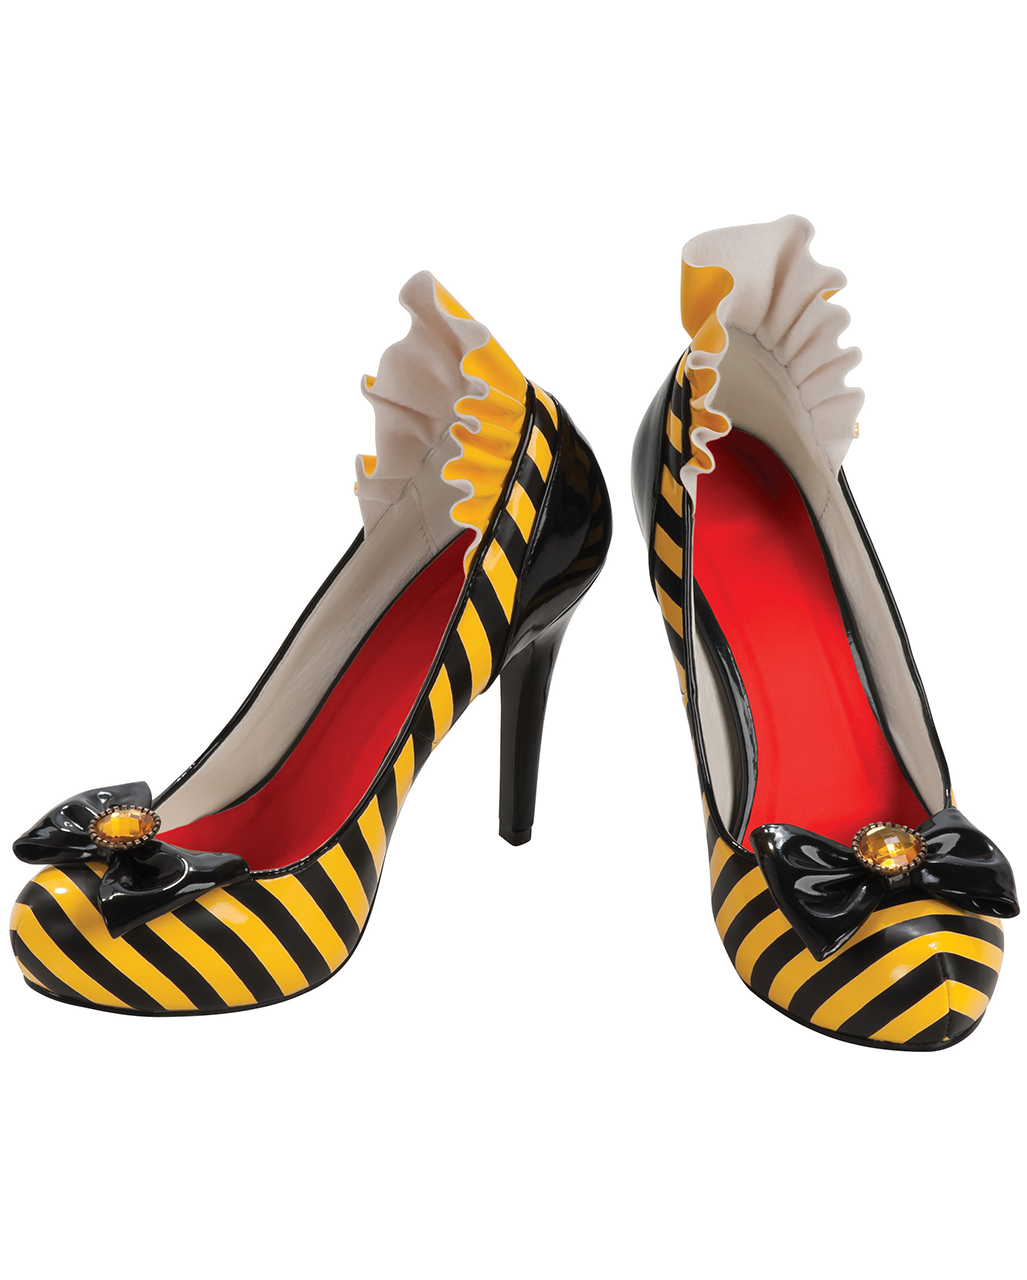 Bees Shoes With Bow | costume shoes buy